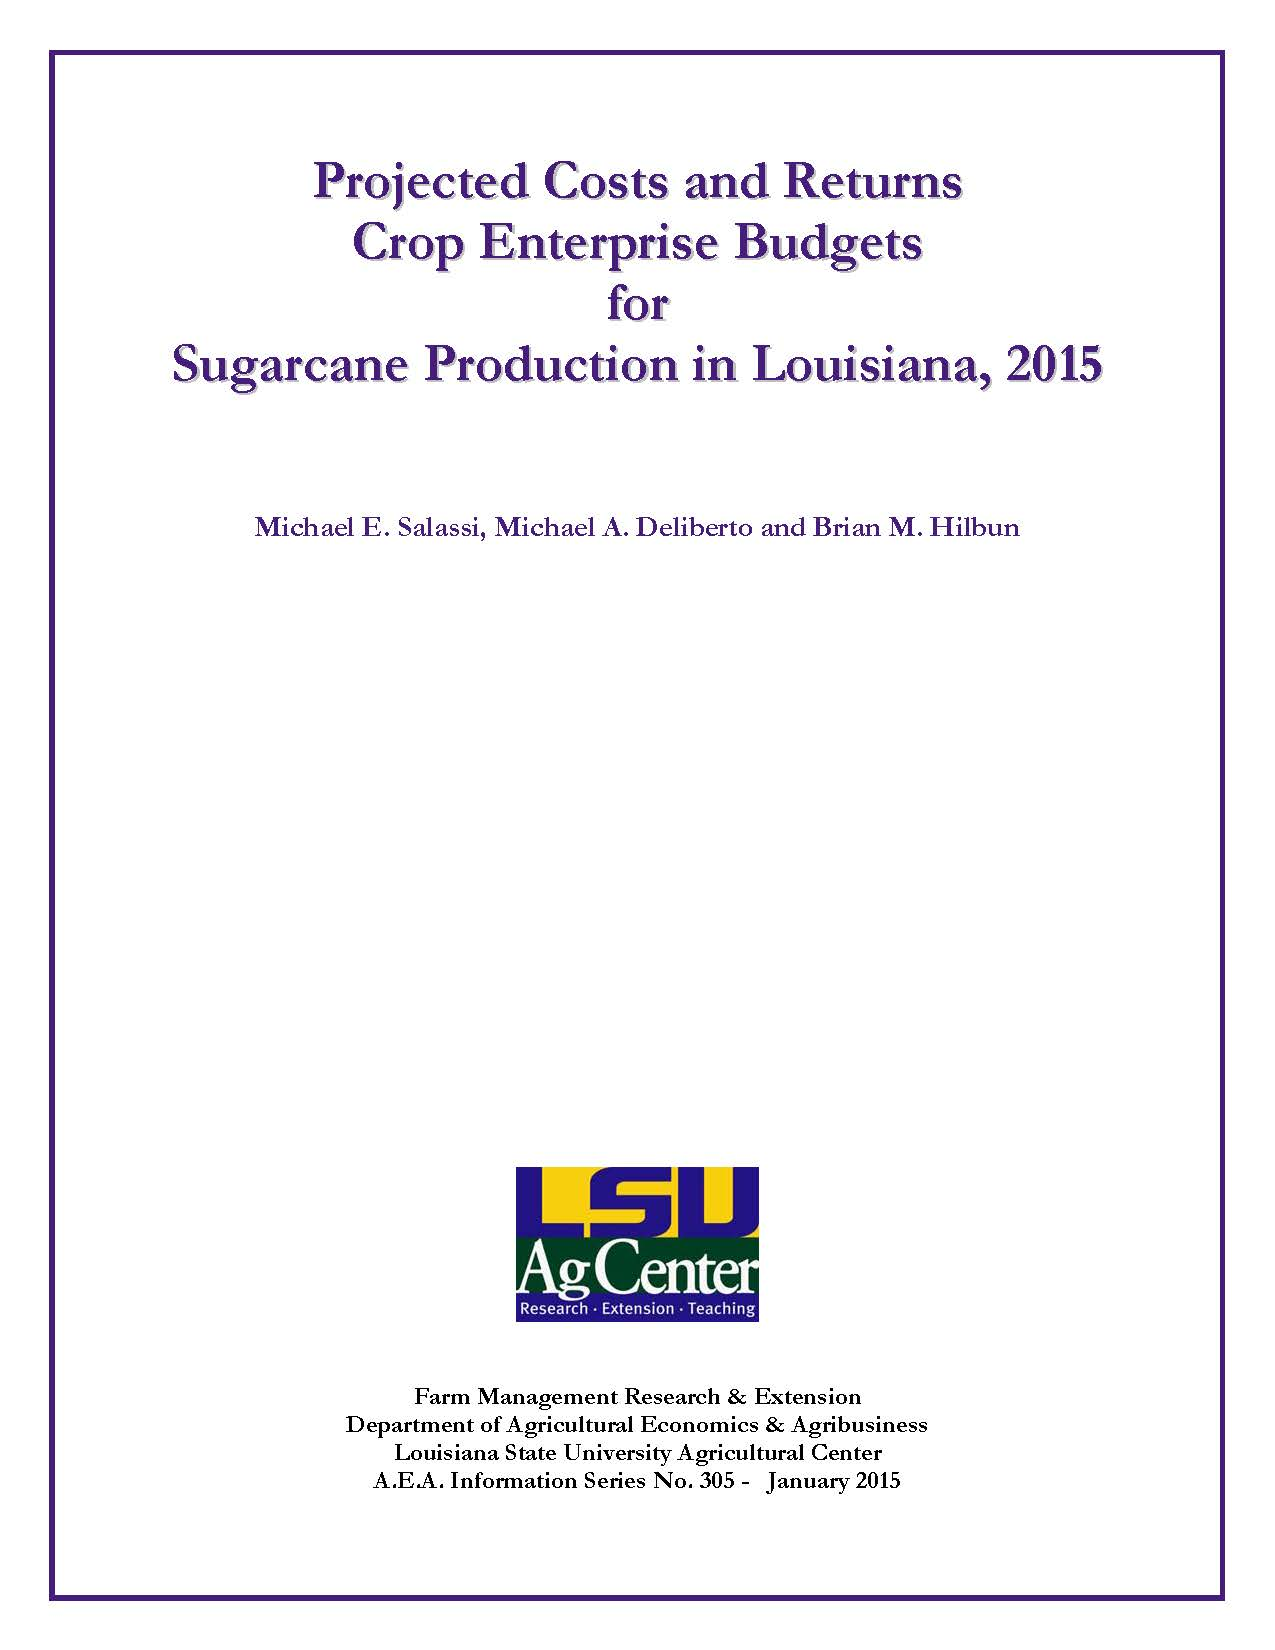 Projected Costs and Returns Crop Enterprise Budgets for Sugarcane Production in Louisiana 2015